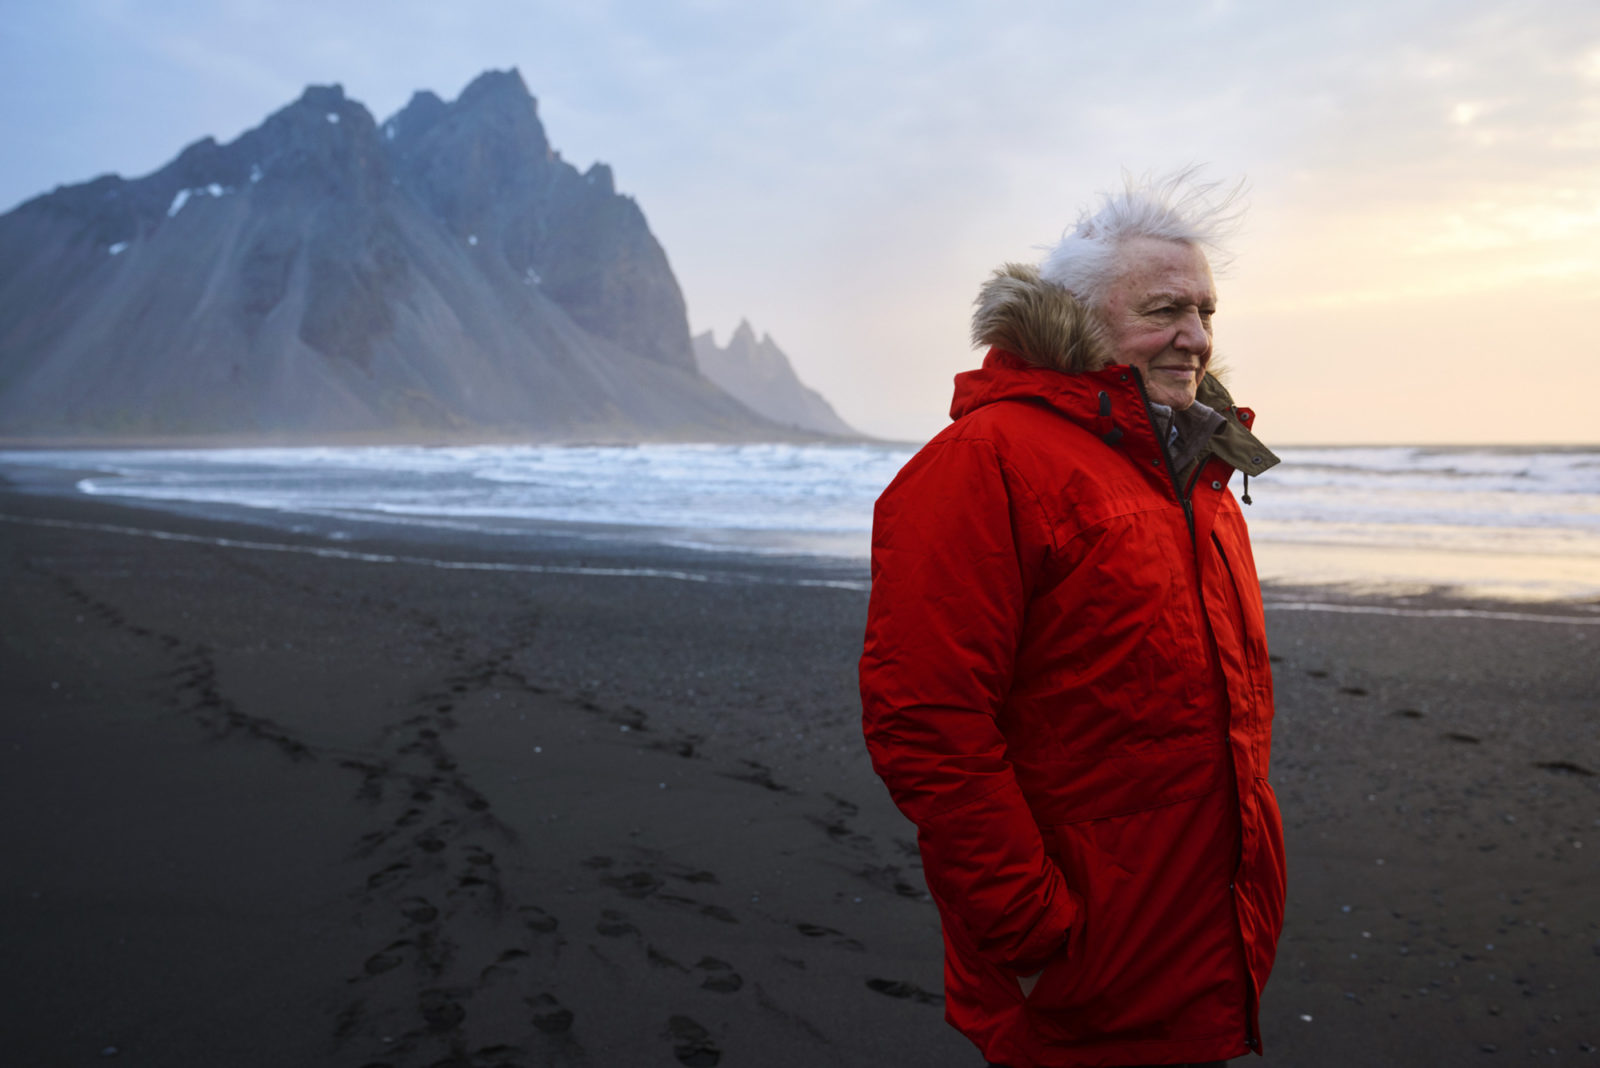 Sir David Attenborough slams whaling 'slaughter' in Seven Worlds, One Planet